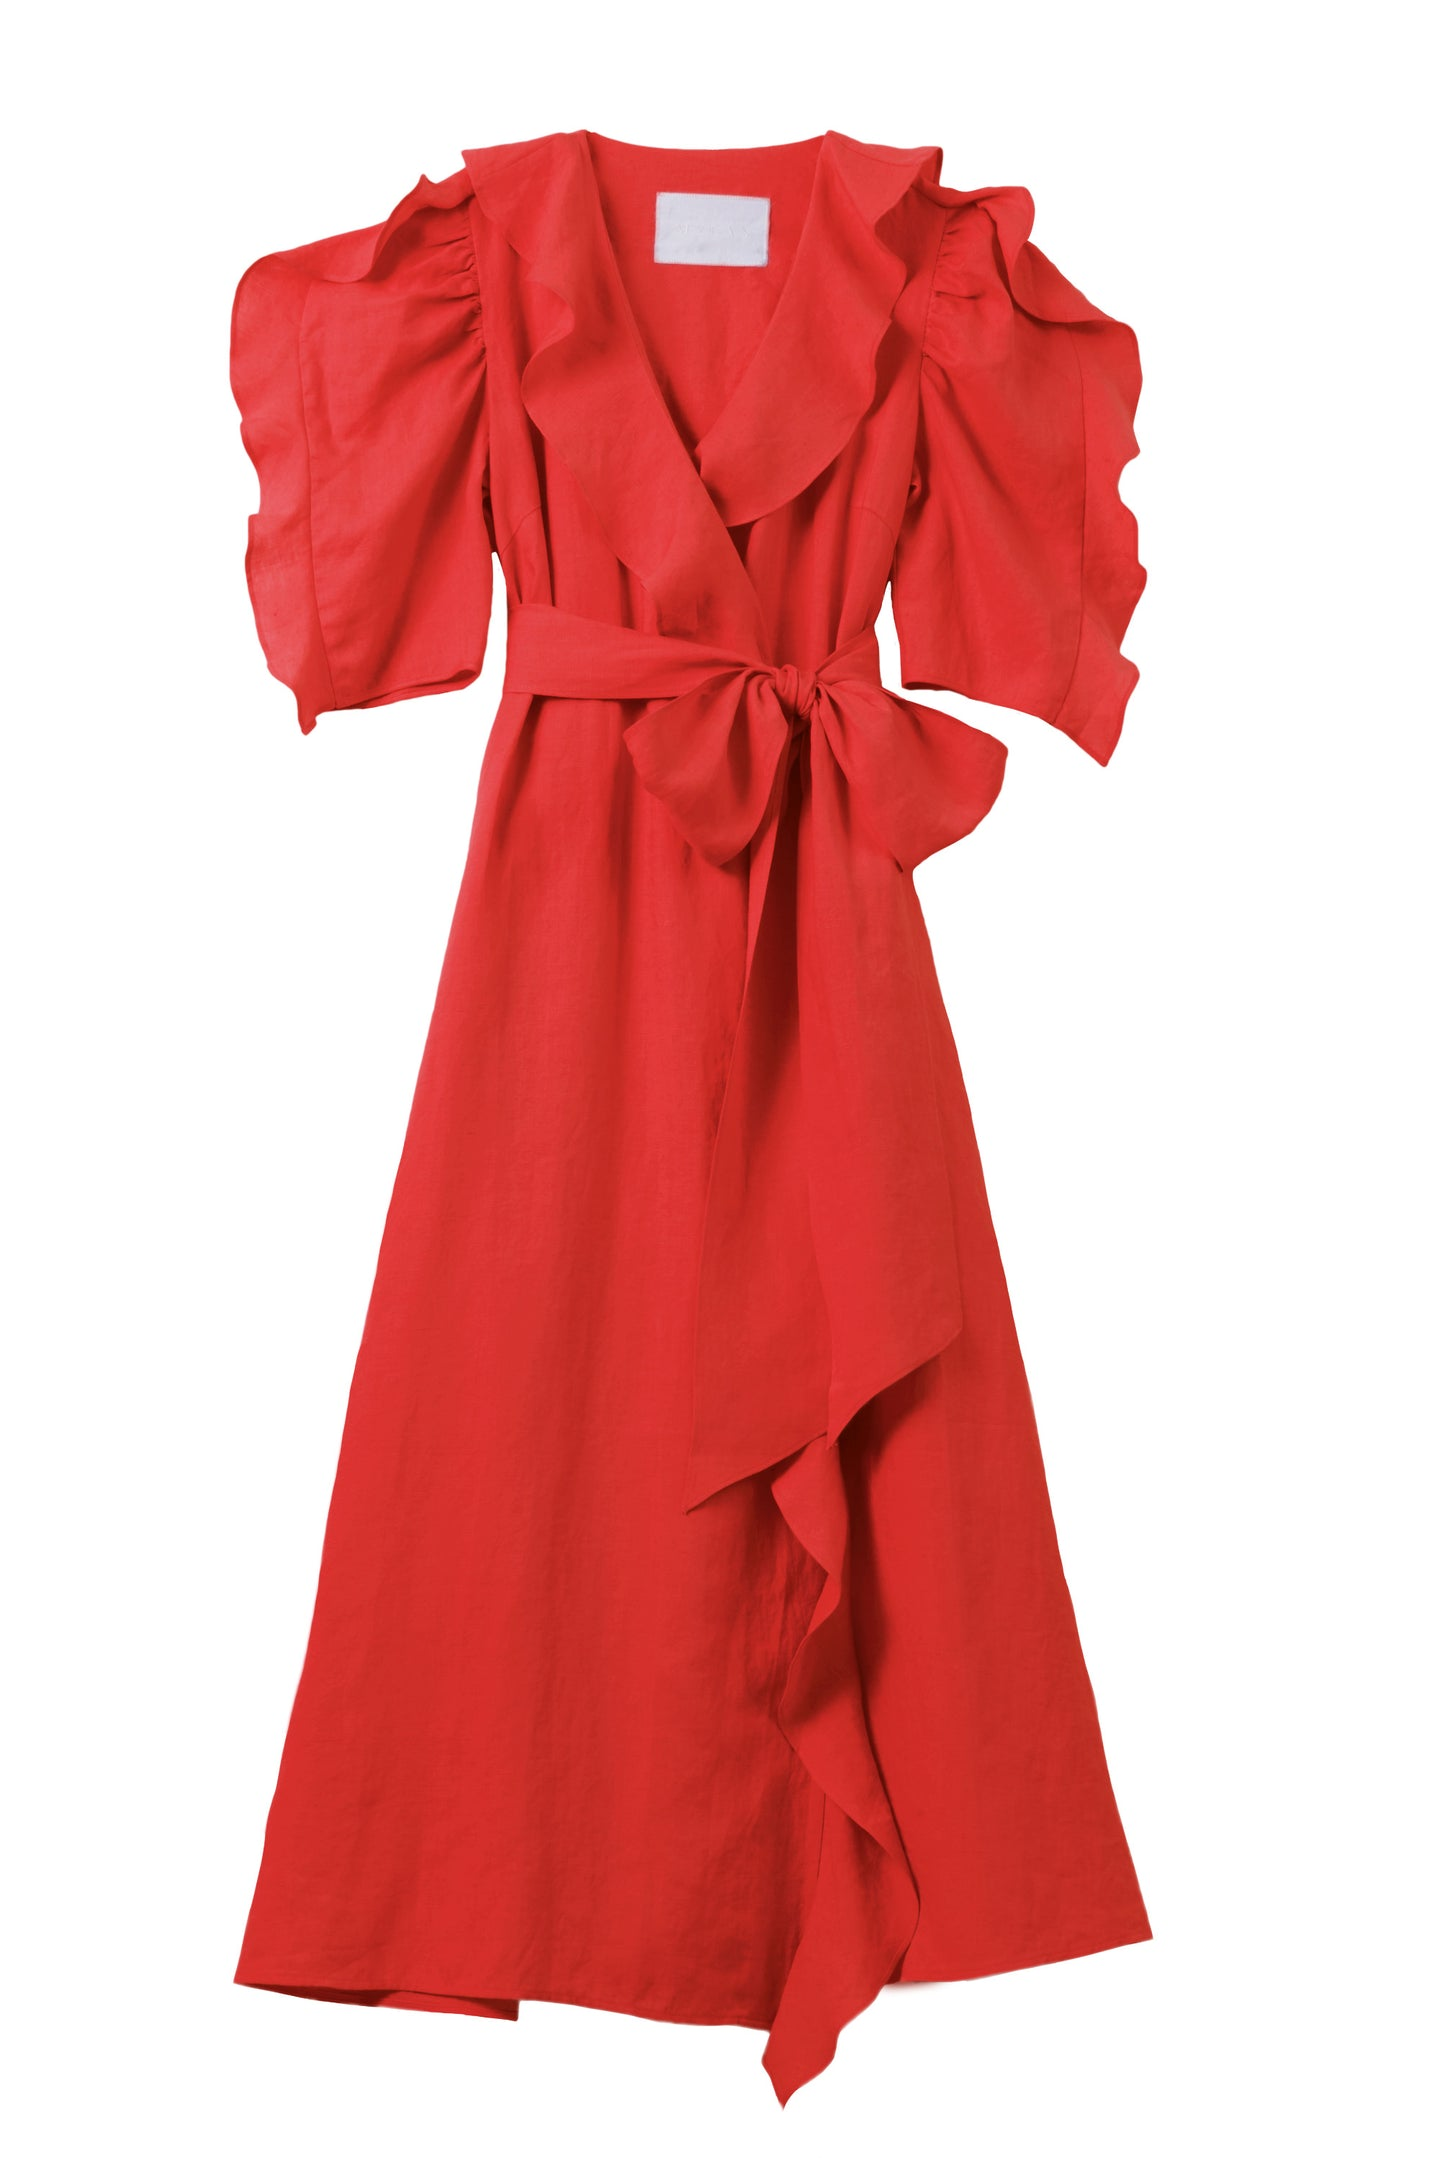 Color Linen Ruffle Wrap Dress | Coral Red